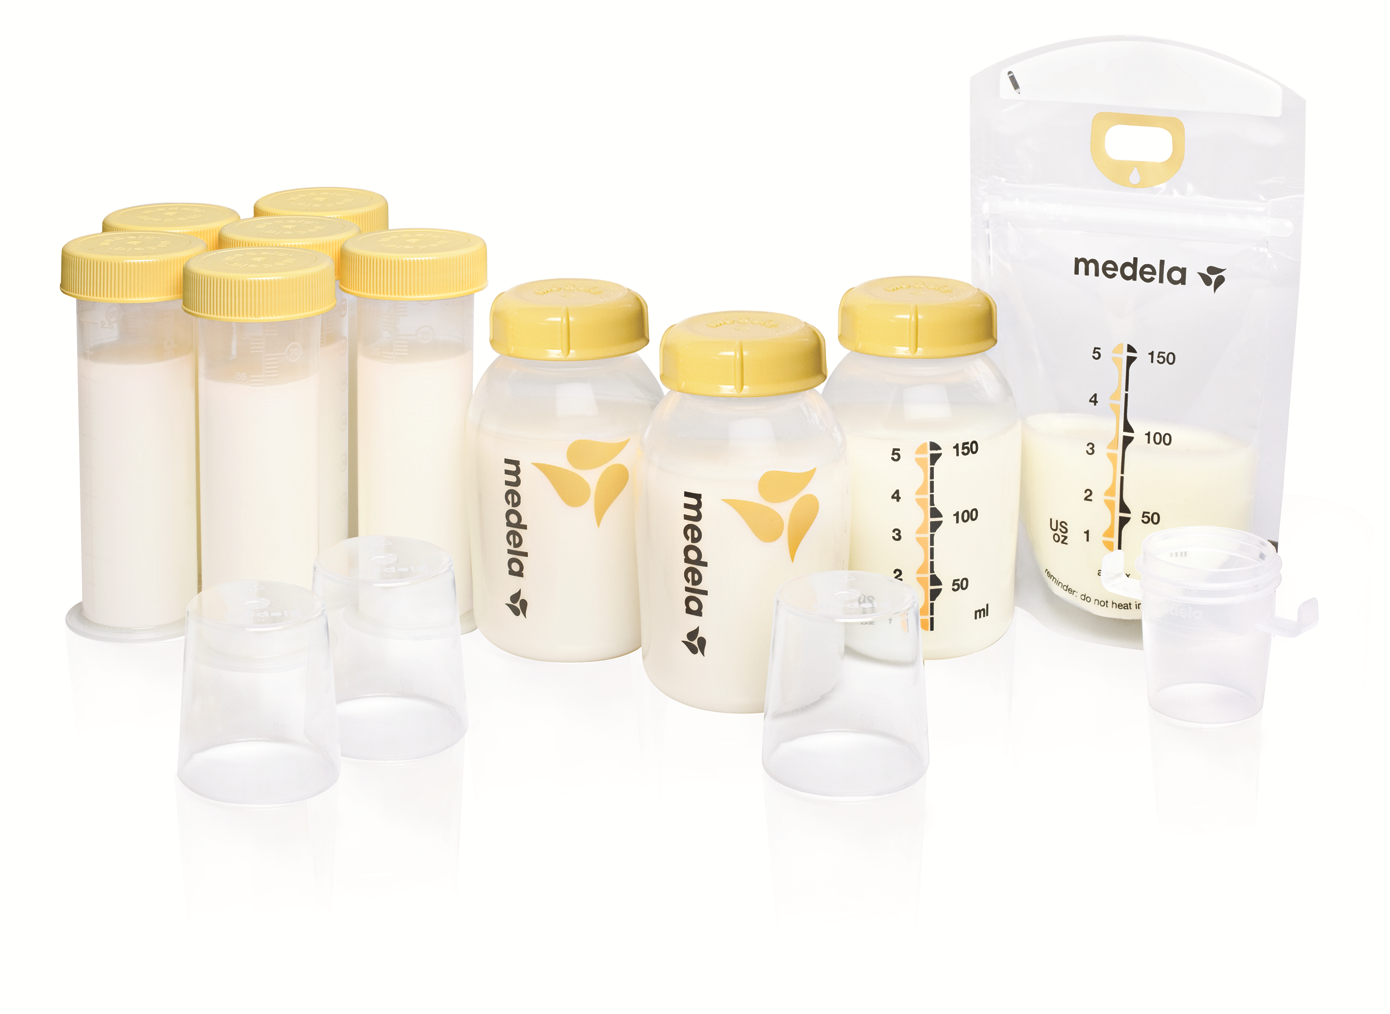 Baby Medela 3 Pack Breastmilk Bottles New Orders Are Welcome.